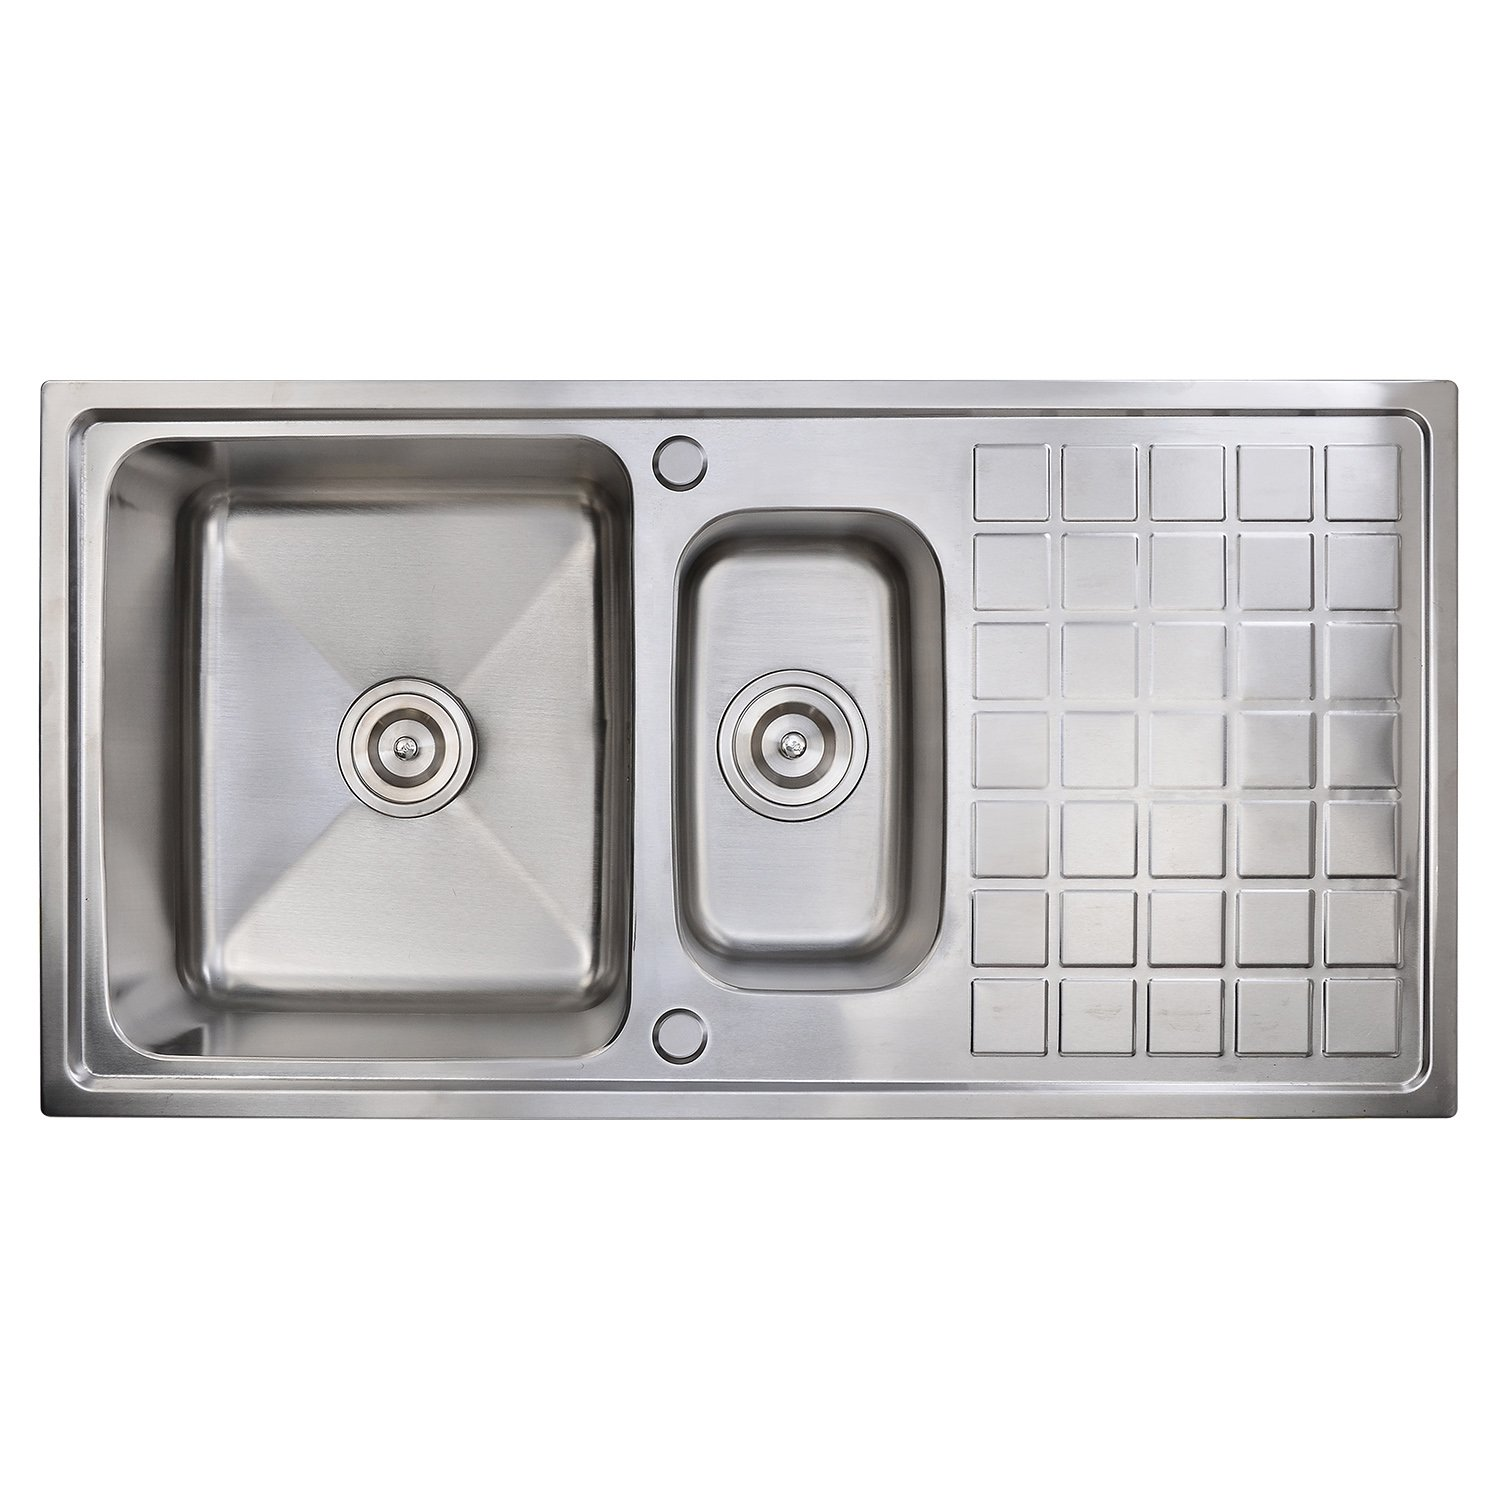 1.5 Bowl Kitchen Sink] Hapilife Square Brushed Stainless Steel ...